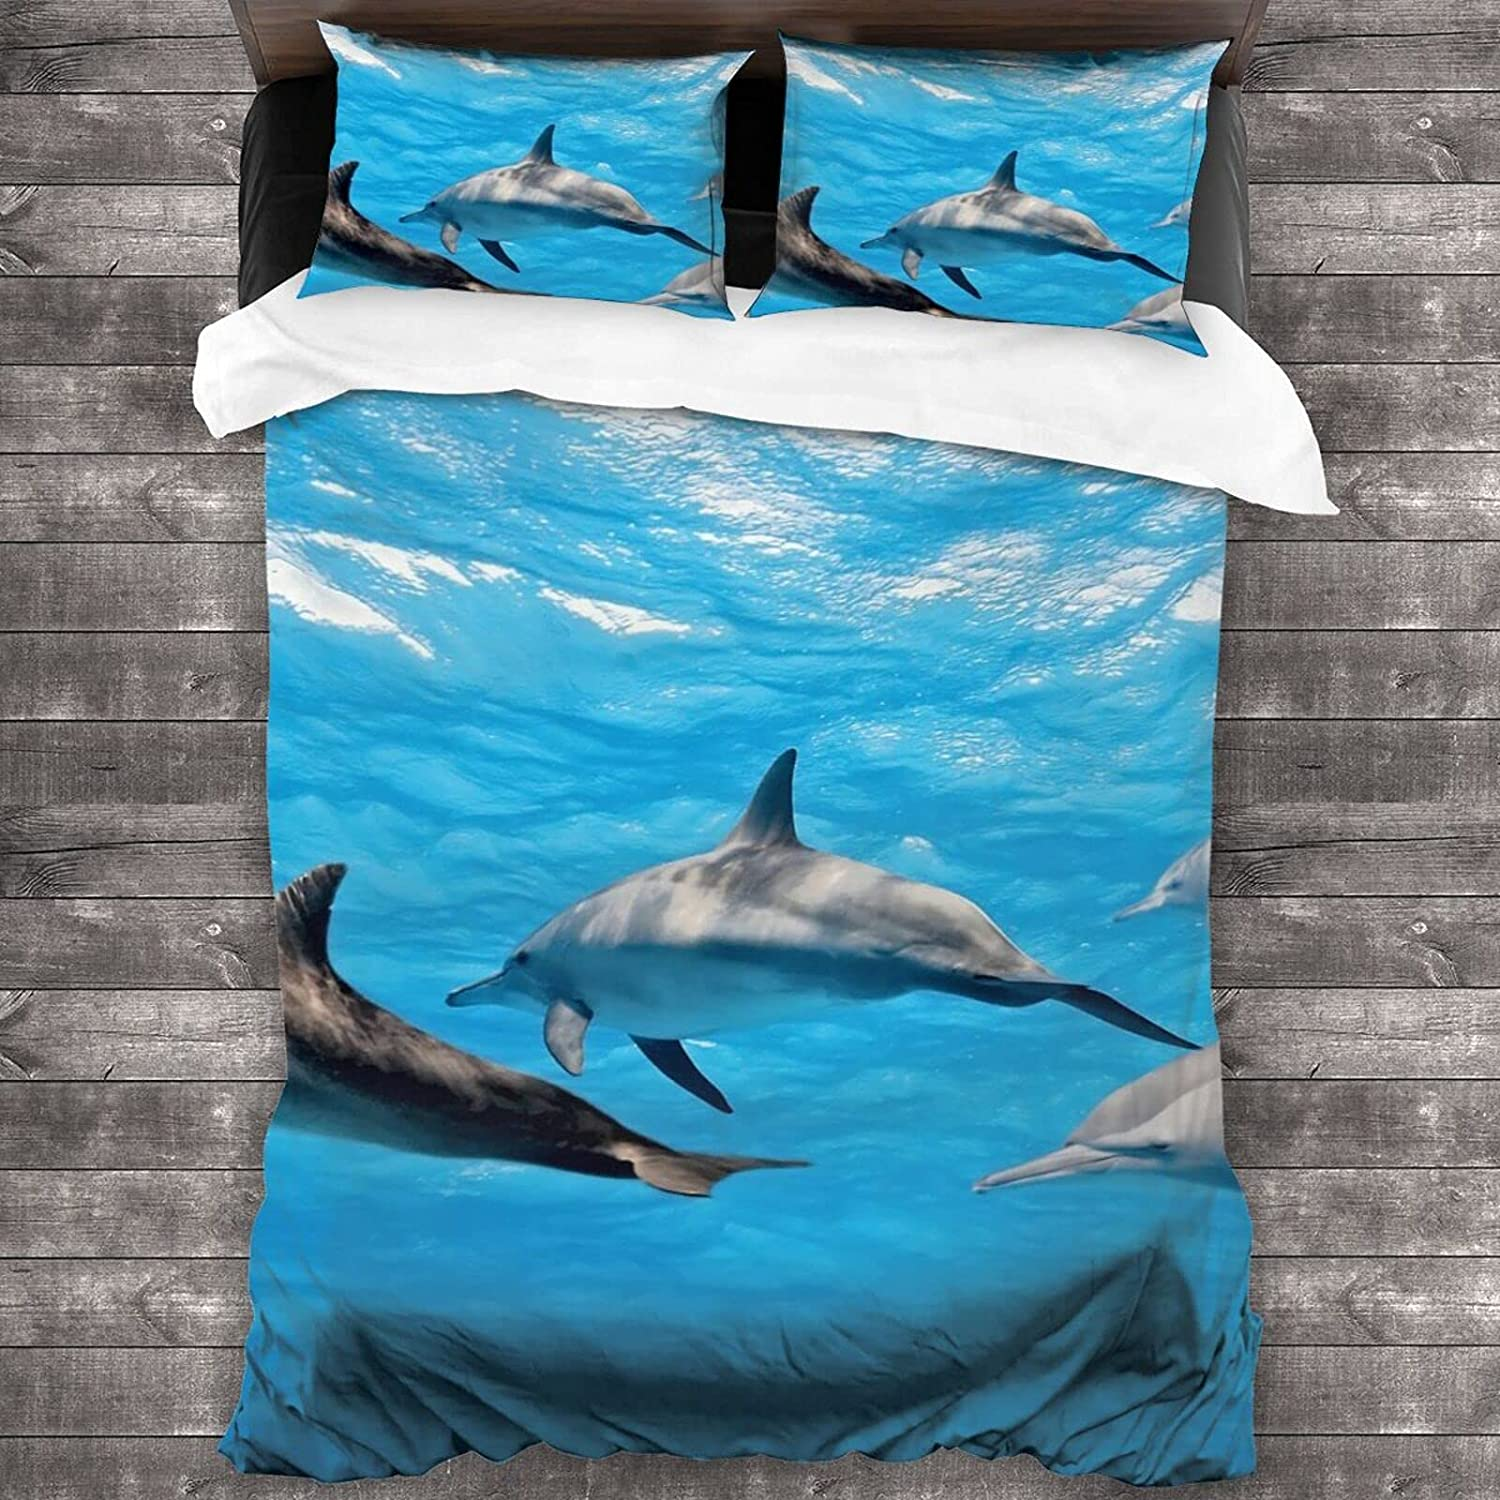 Dolphins in The Max 56% OFF Sea Bedding Set Bedspread Gi Boys Adult Purchase Cotton